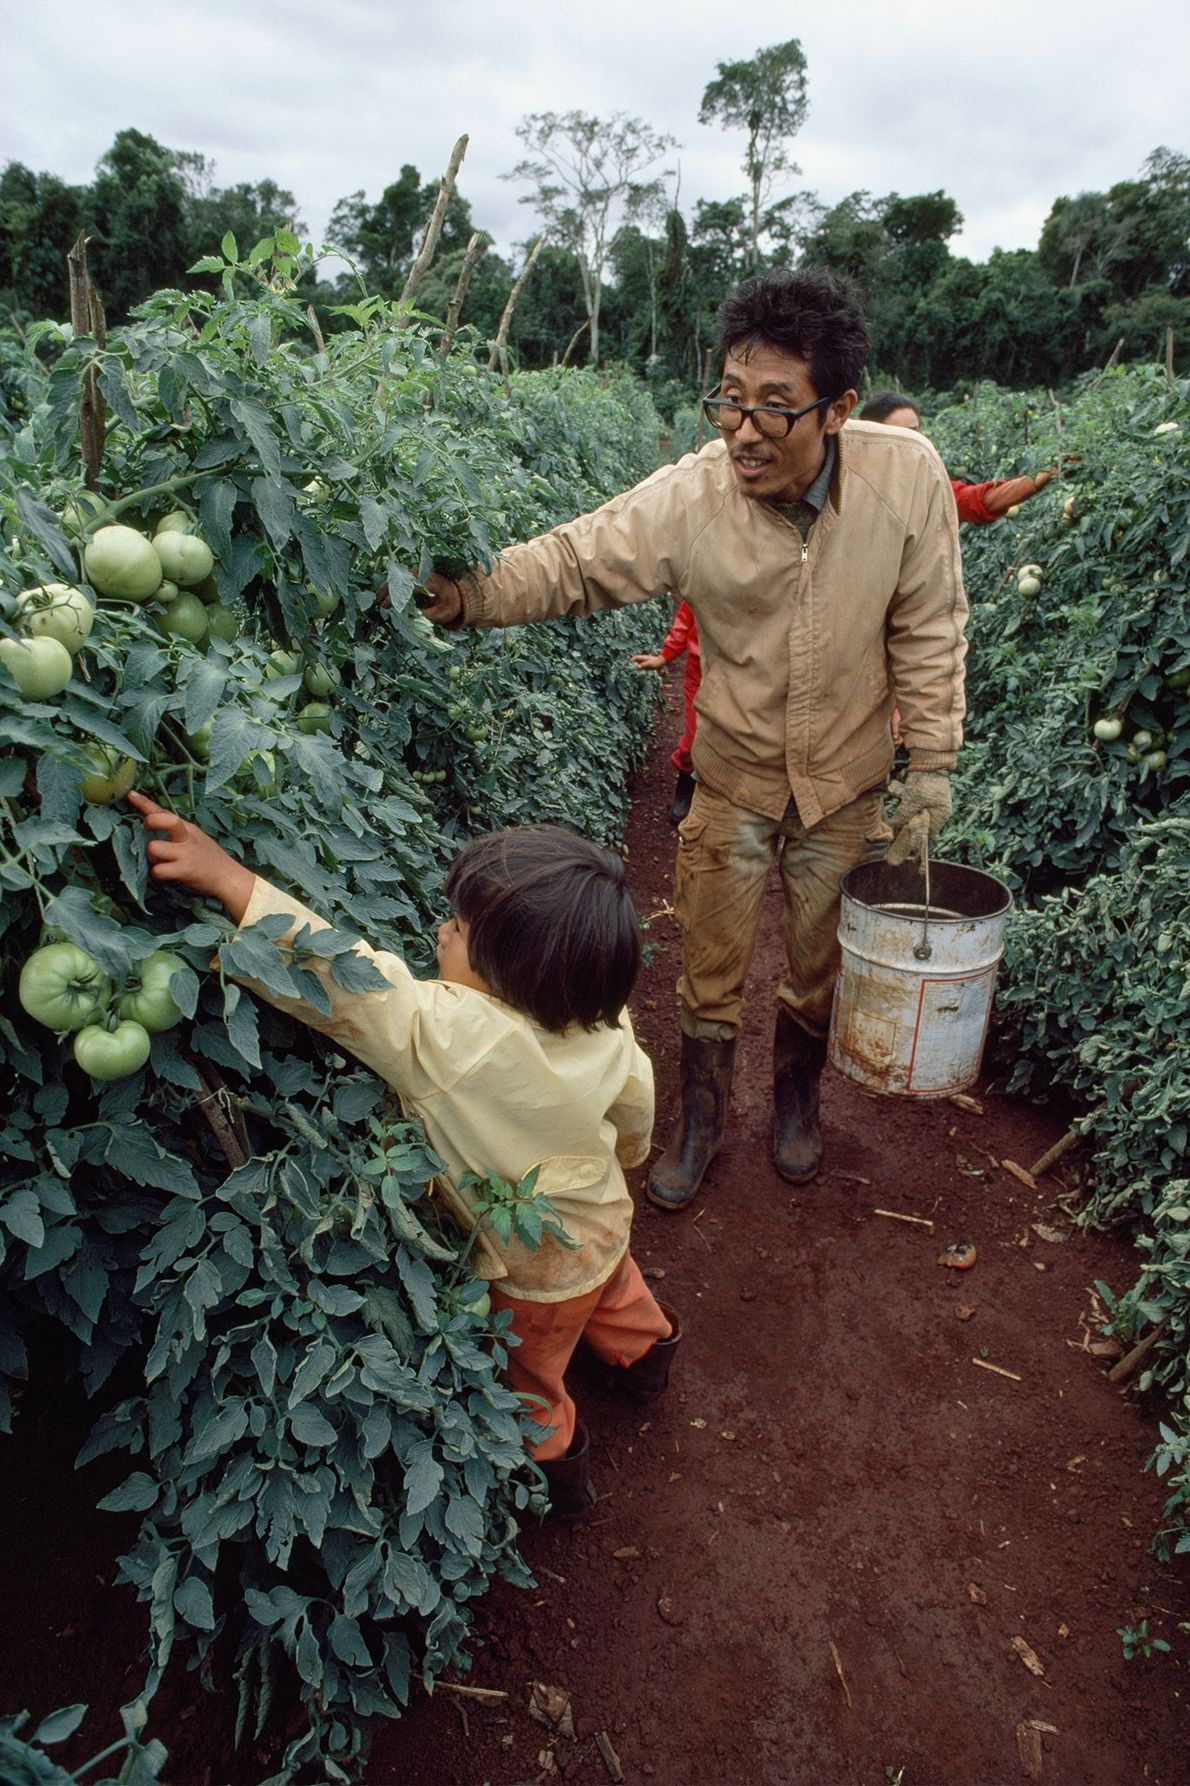 A Japanese immigrant harvests tomatoes with his daughter near Yguazú, Paraguay, in the 1980s.